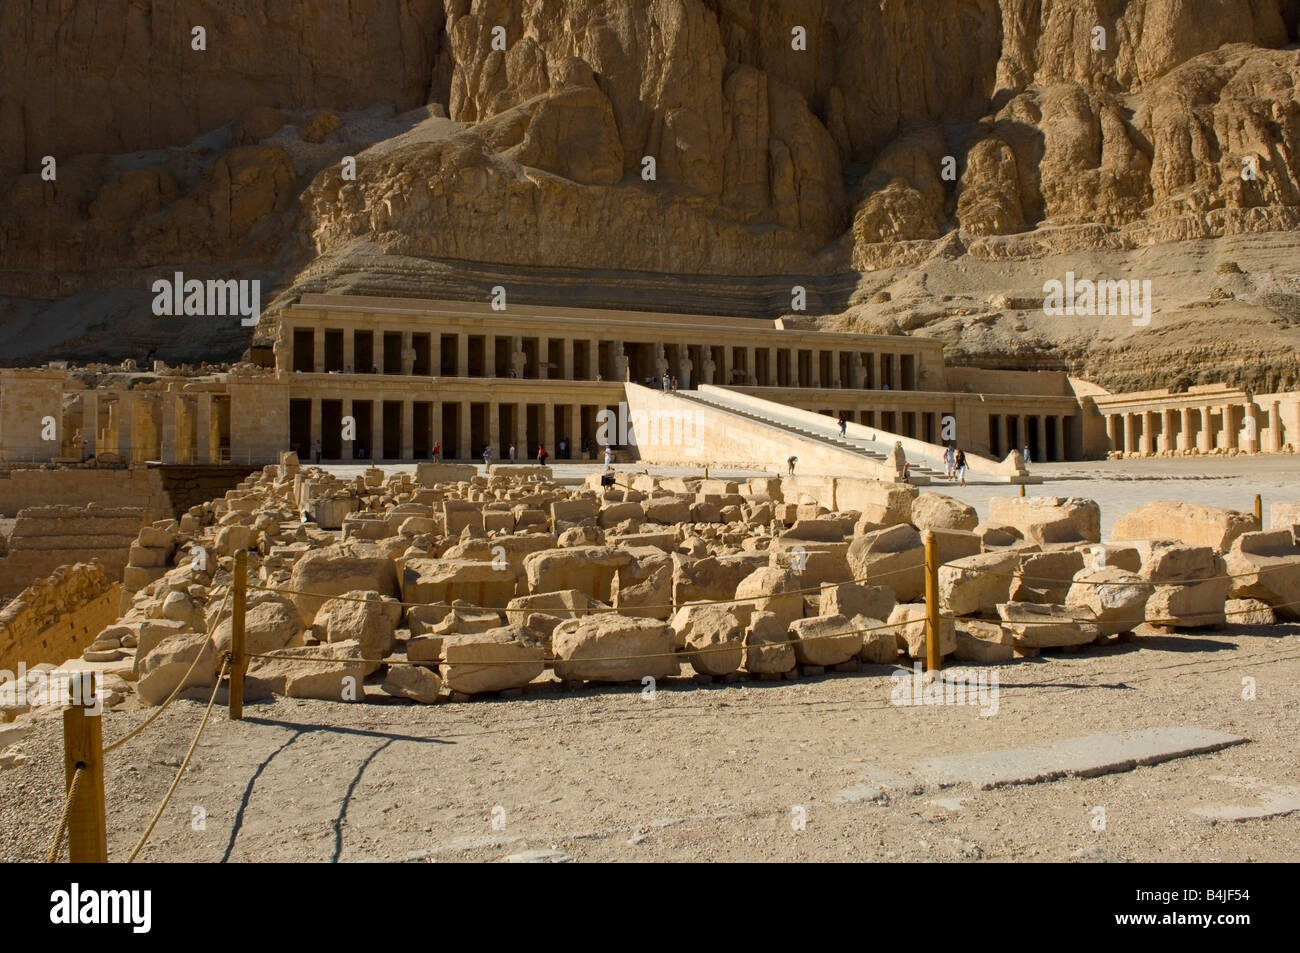 an analysis of the 18th dynasty and the maat ka ra hatshepsut of egypt Hatshepsut took power after the death of the fourth pharaoh of the 18th dynasty thutmose ii daughter of tuthmose i and aahmes was born in the 15th century bc both maat-ka-ra and hatshepsut were depicted inside a cartouche hatshepsut was the first female pharaoh of egypt.